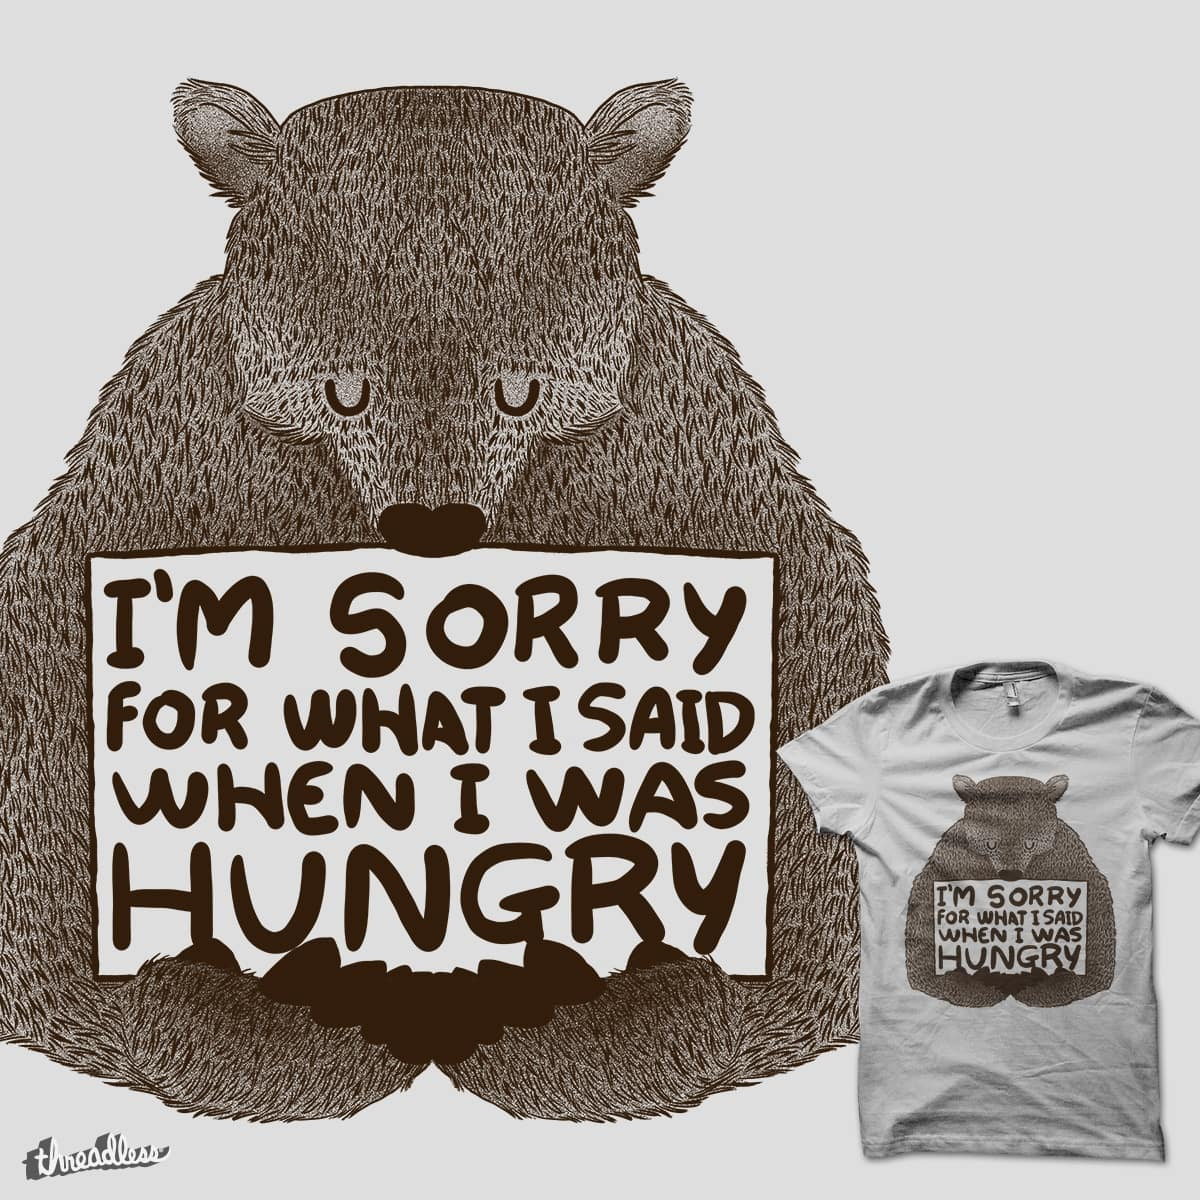 ff8cac4ba I'm Sorry For What I Said When I Was Hungry by tobiasfonseca on Threadless